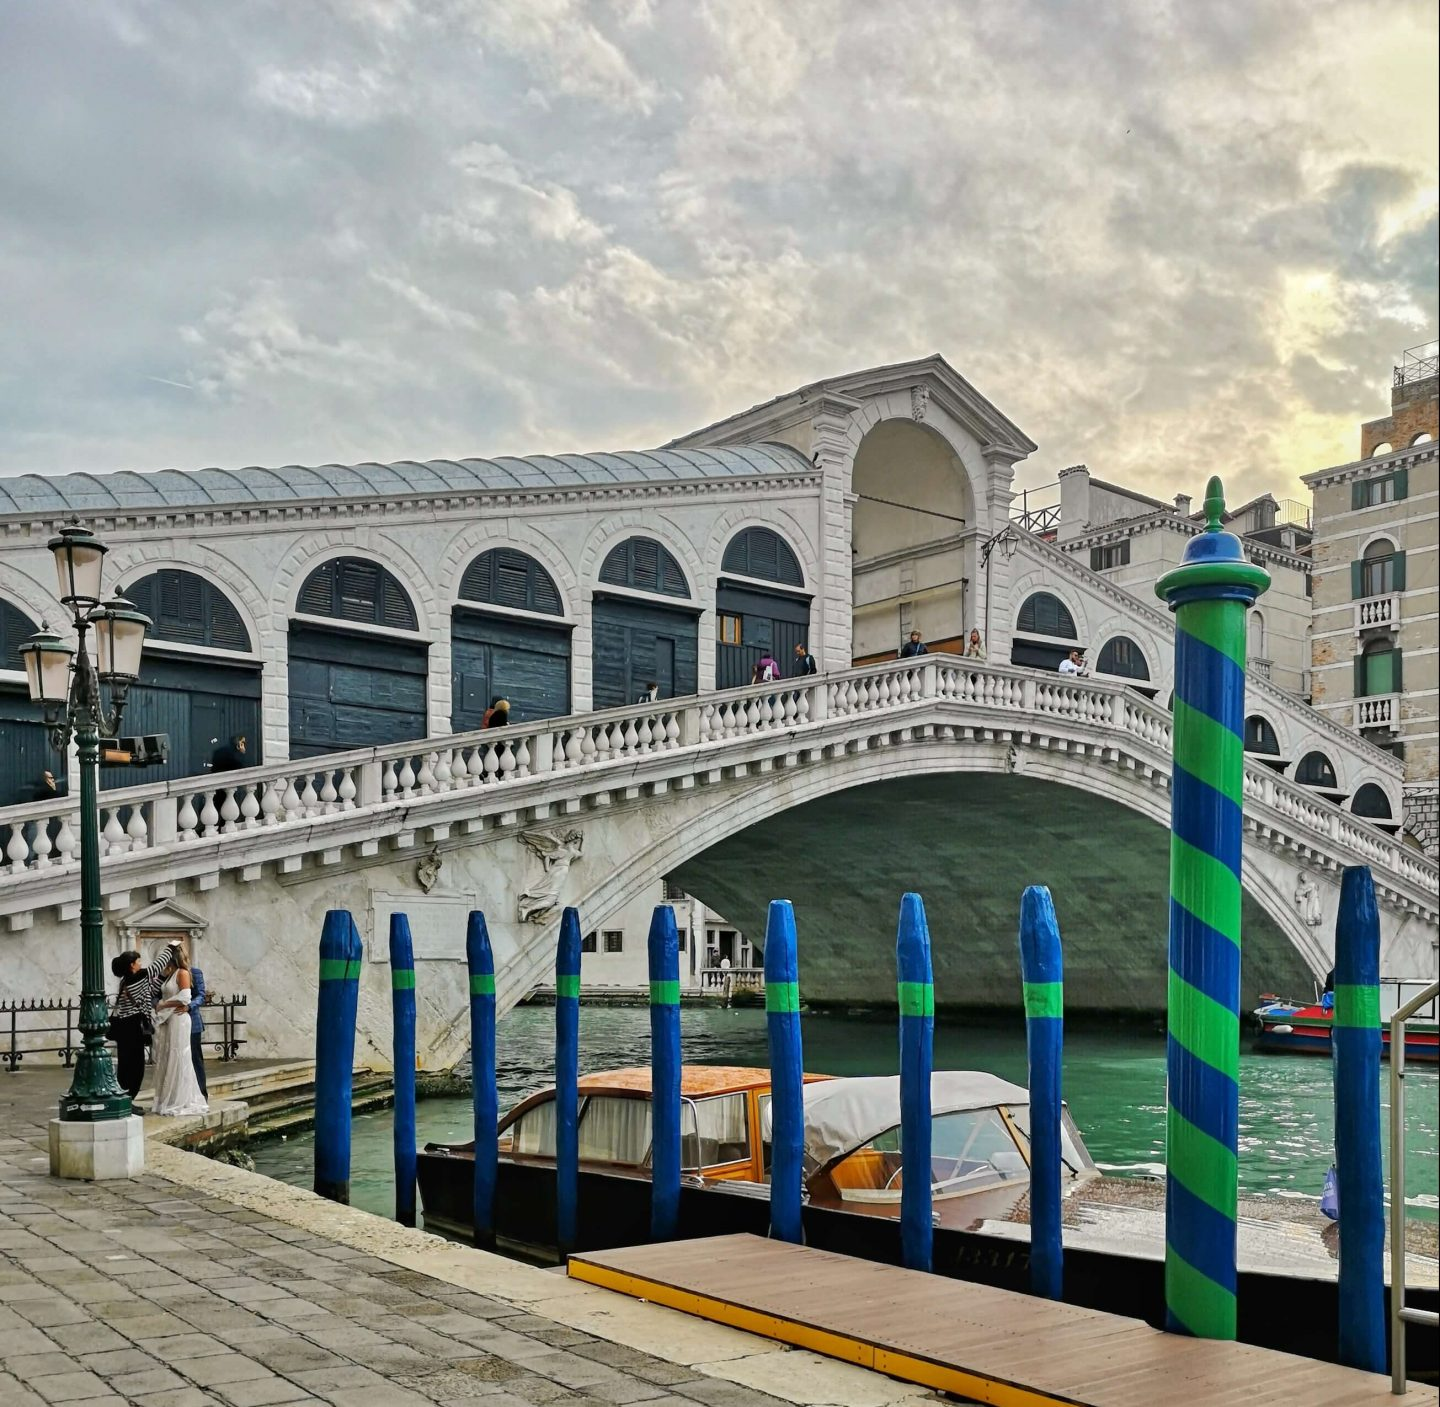 New Shades of Hippy - Anneka Nicholls - travel blog and green living - 24 hours in Venice, Italy - Rialto Bridge, Venice